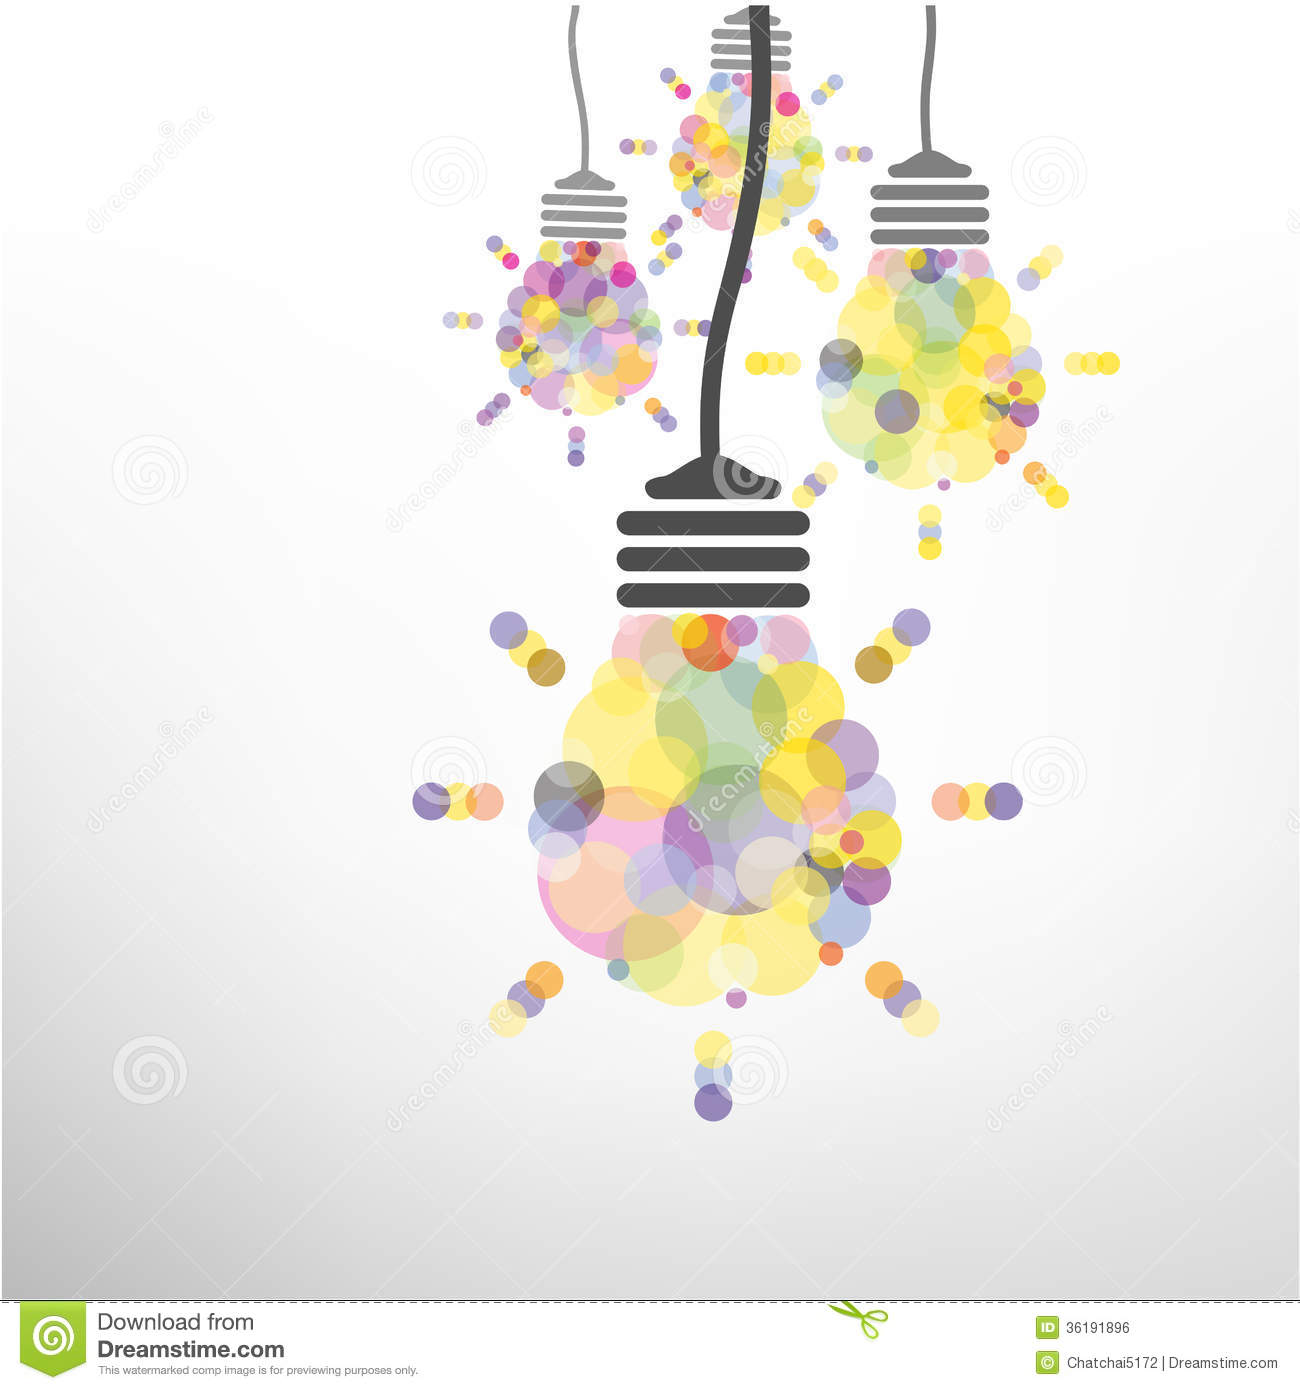 creative light bulb idea concept background design royalty free stock image idea design idea design - Idea Design